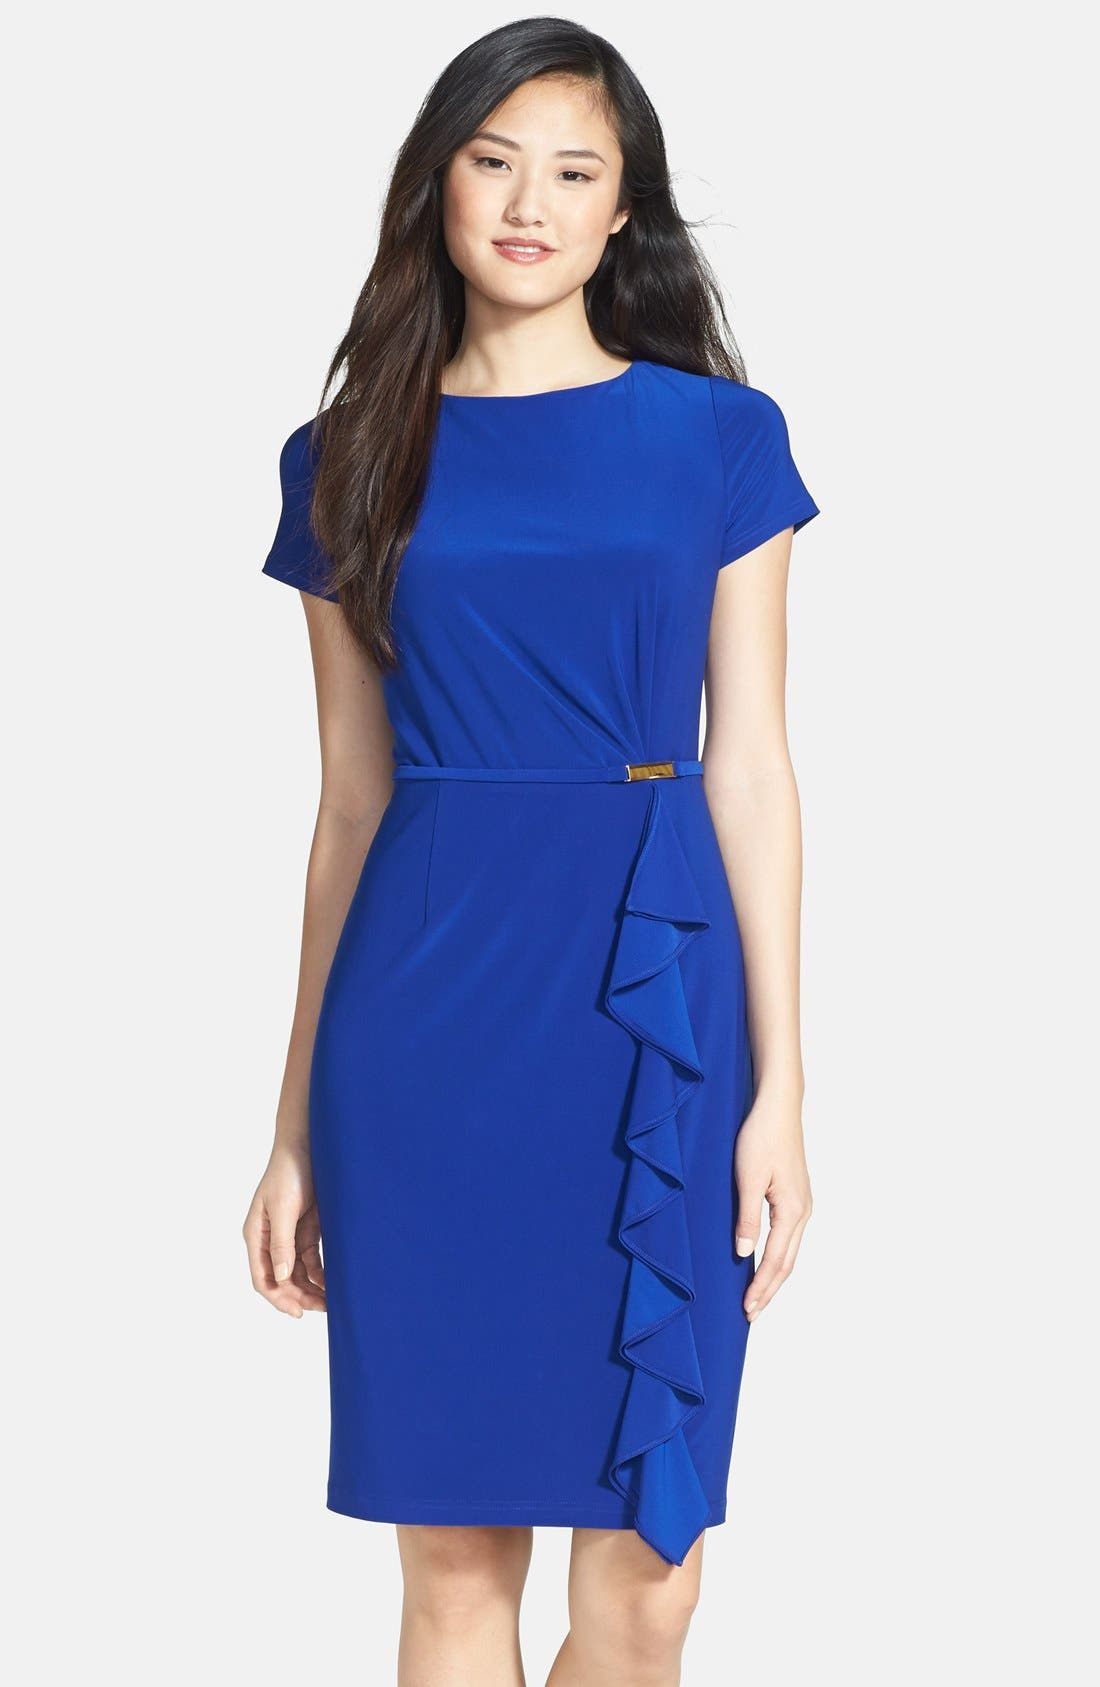 Alternate Image 1 Selected - Adrianna Papell Ruffle Detail Sheath Dress